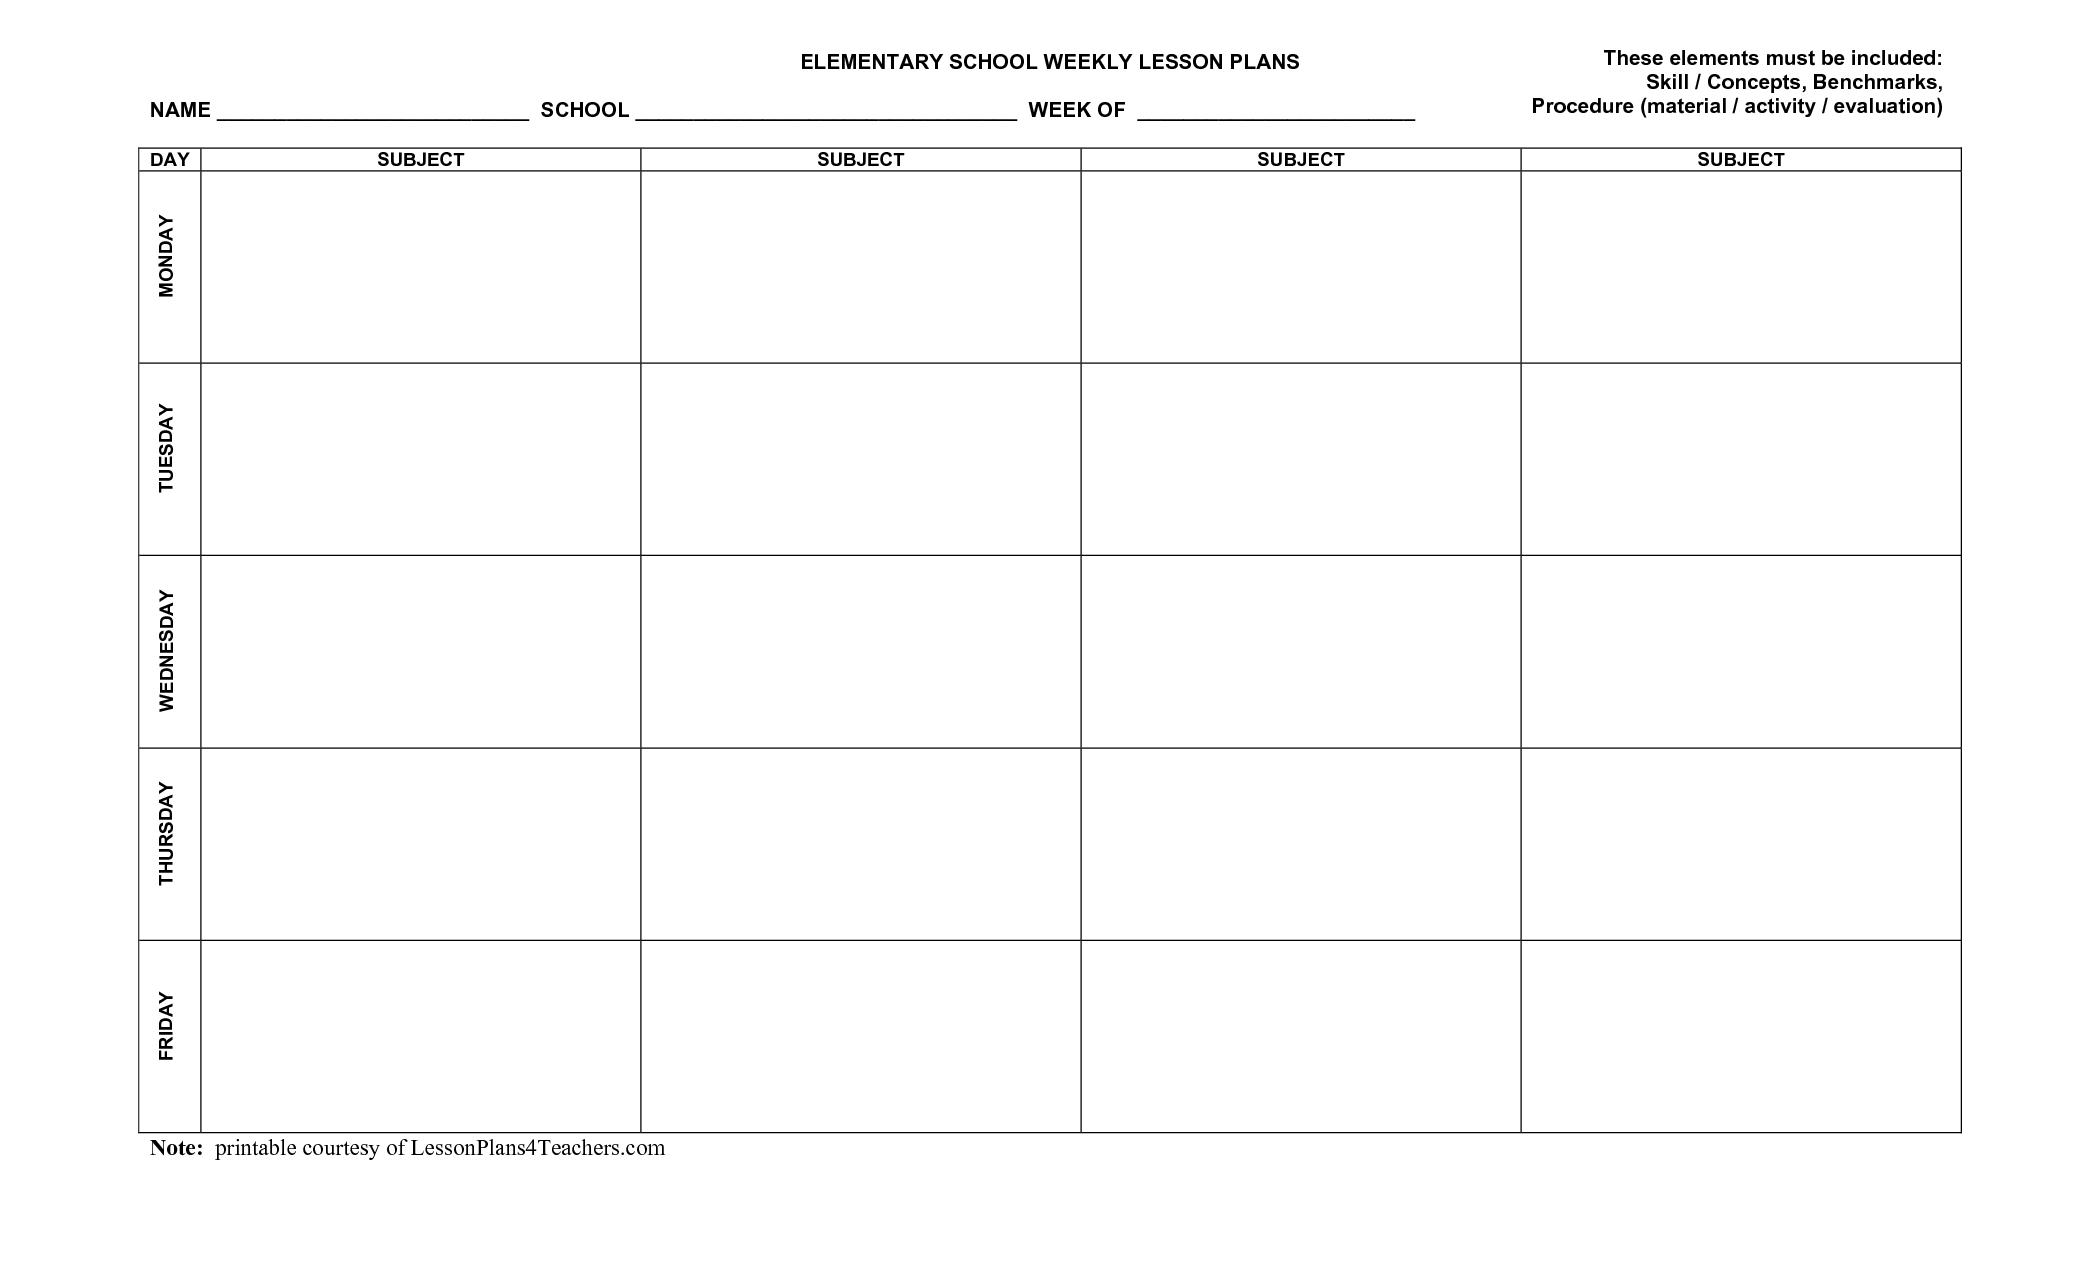 Pinterri Bagby On School Activities | Weekly Lesson Plan inside Monthly Lesson Plan Template 2019